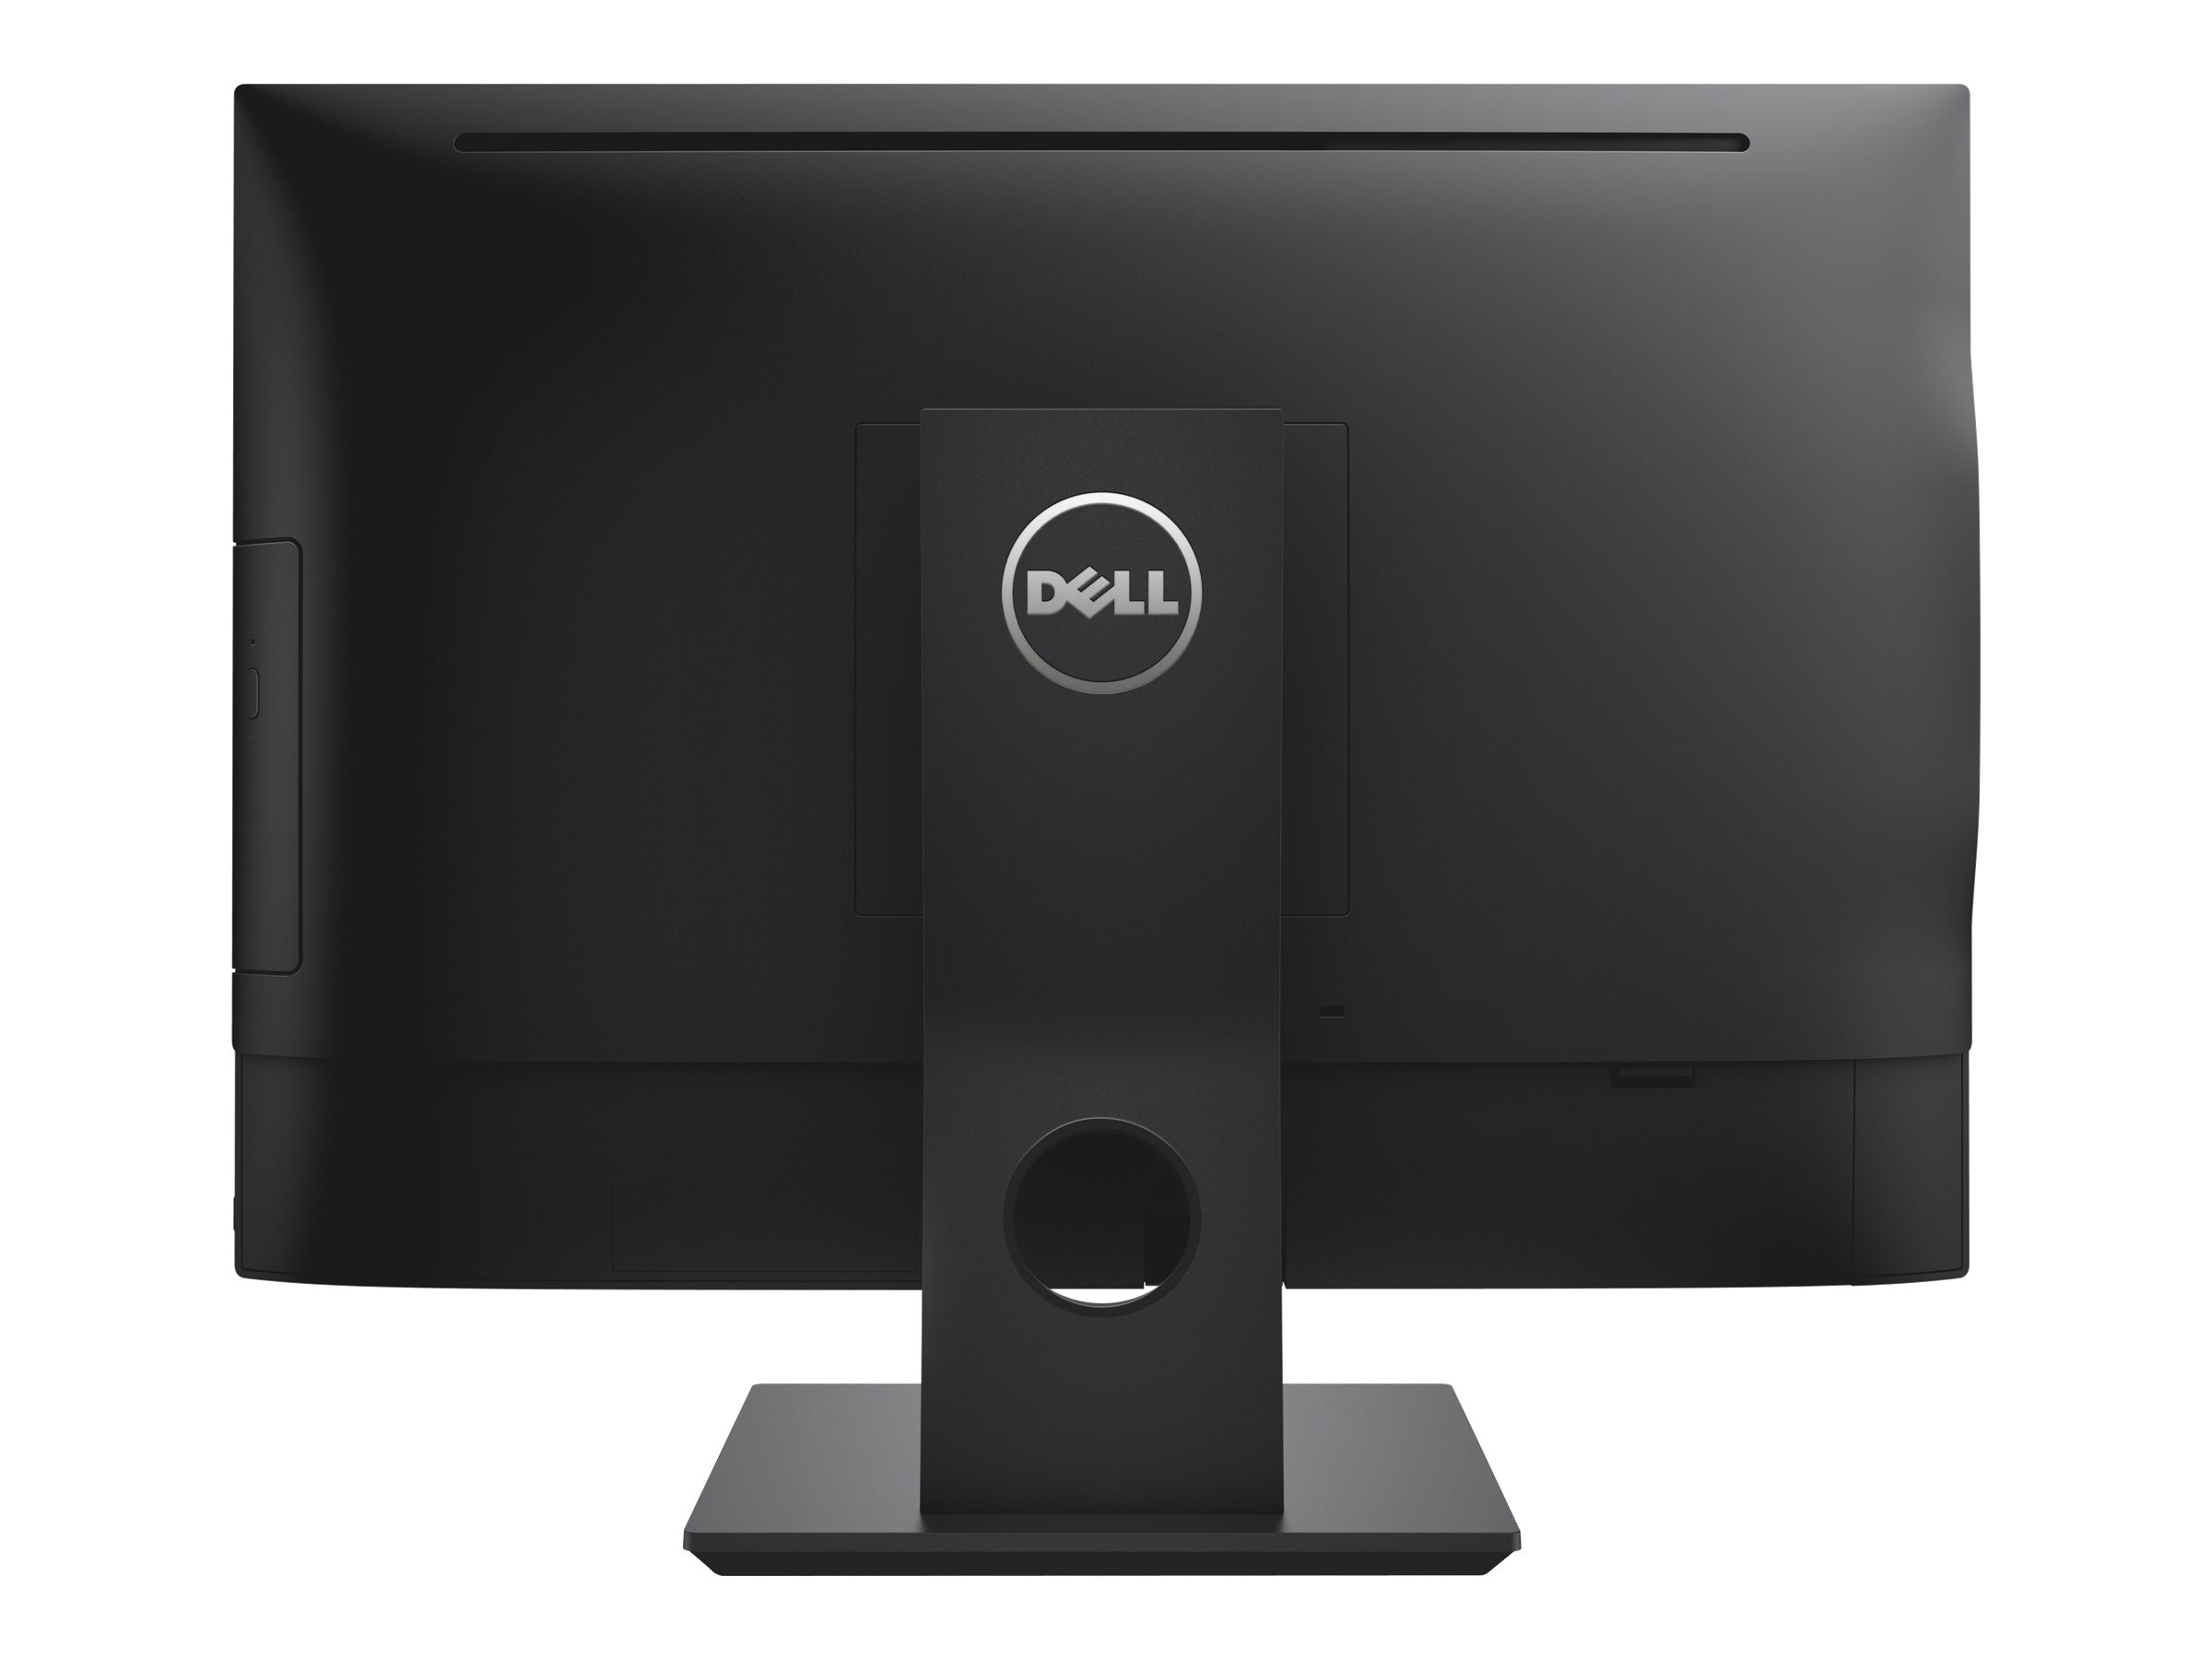 Dell 2HD1J Image 6